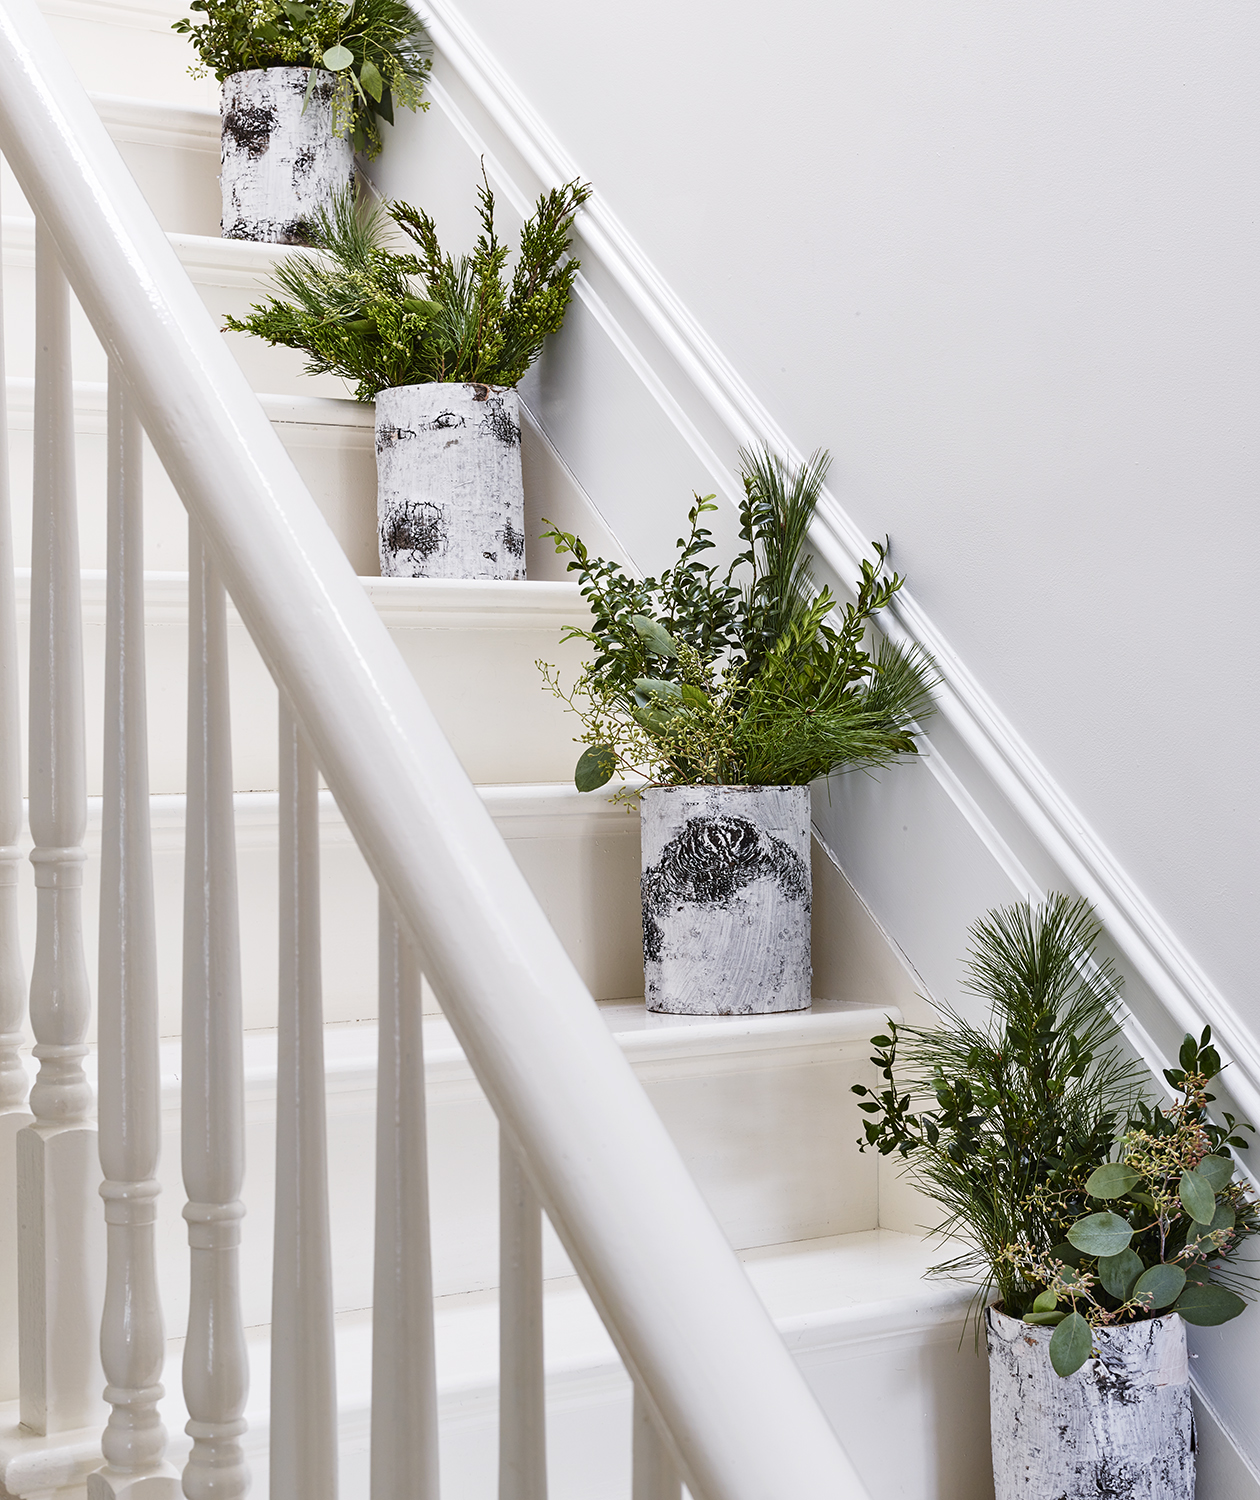 Potted plants on stairs